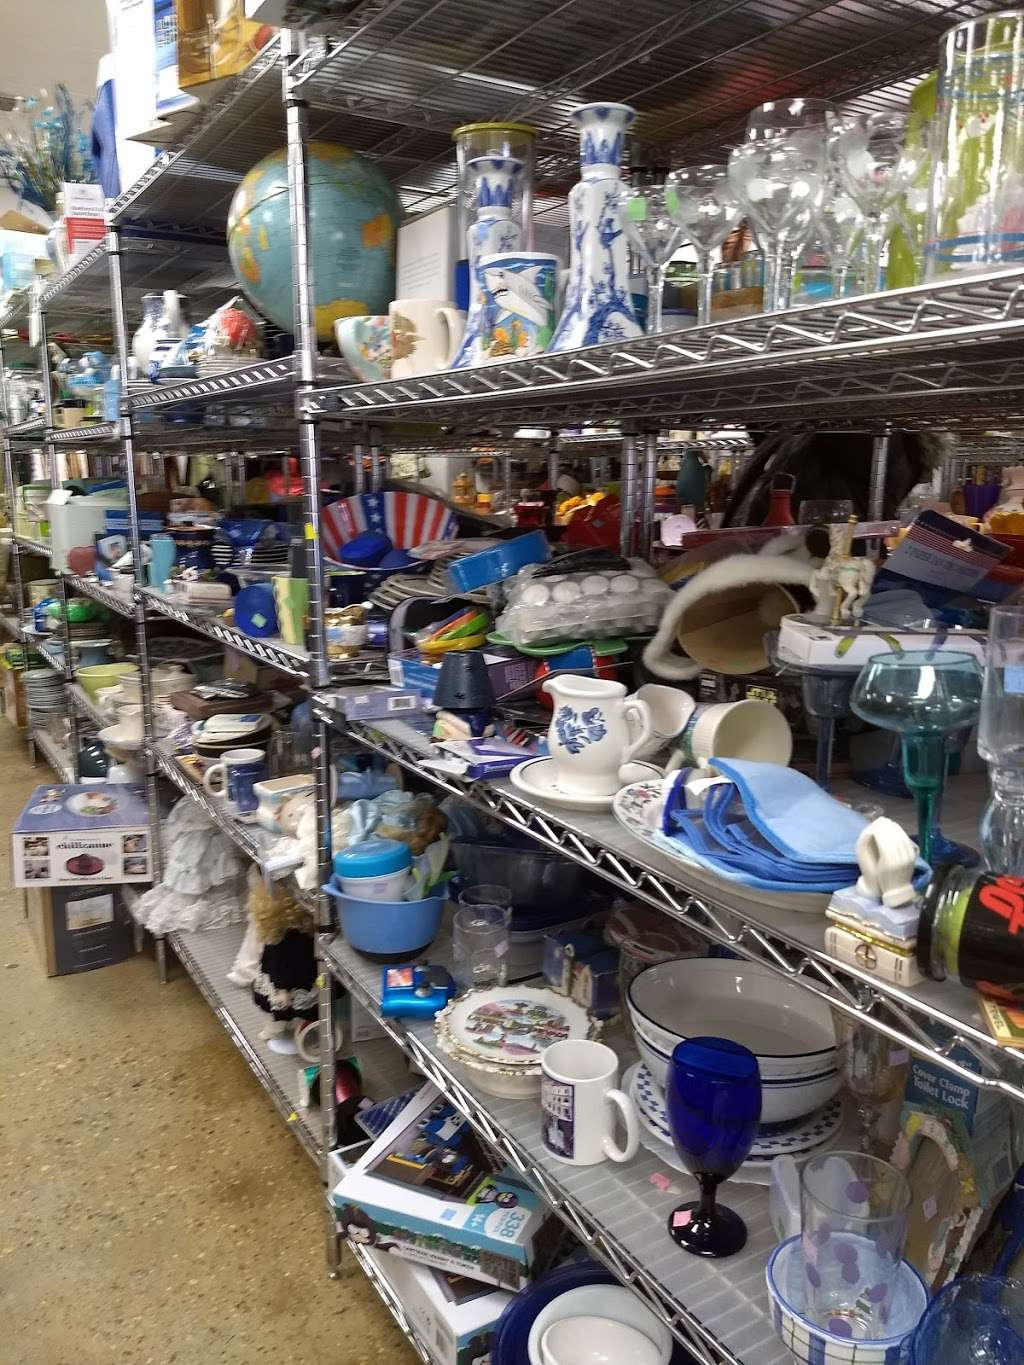 Goodwill Industries Store & Donation Center - clothing store  | Photo 5 of 10 | Address: 1900 Jericho Turnpike, East Northport, NY 11731, USA | Phone: (631) 462-4219